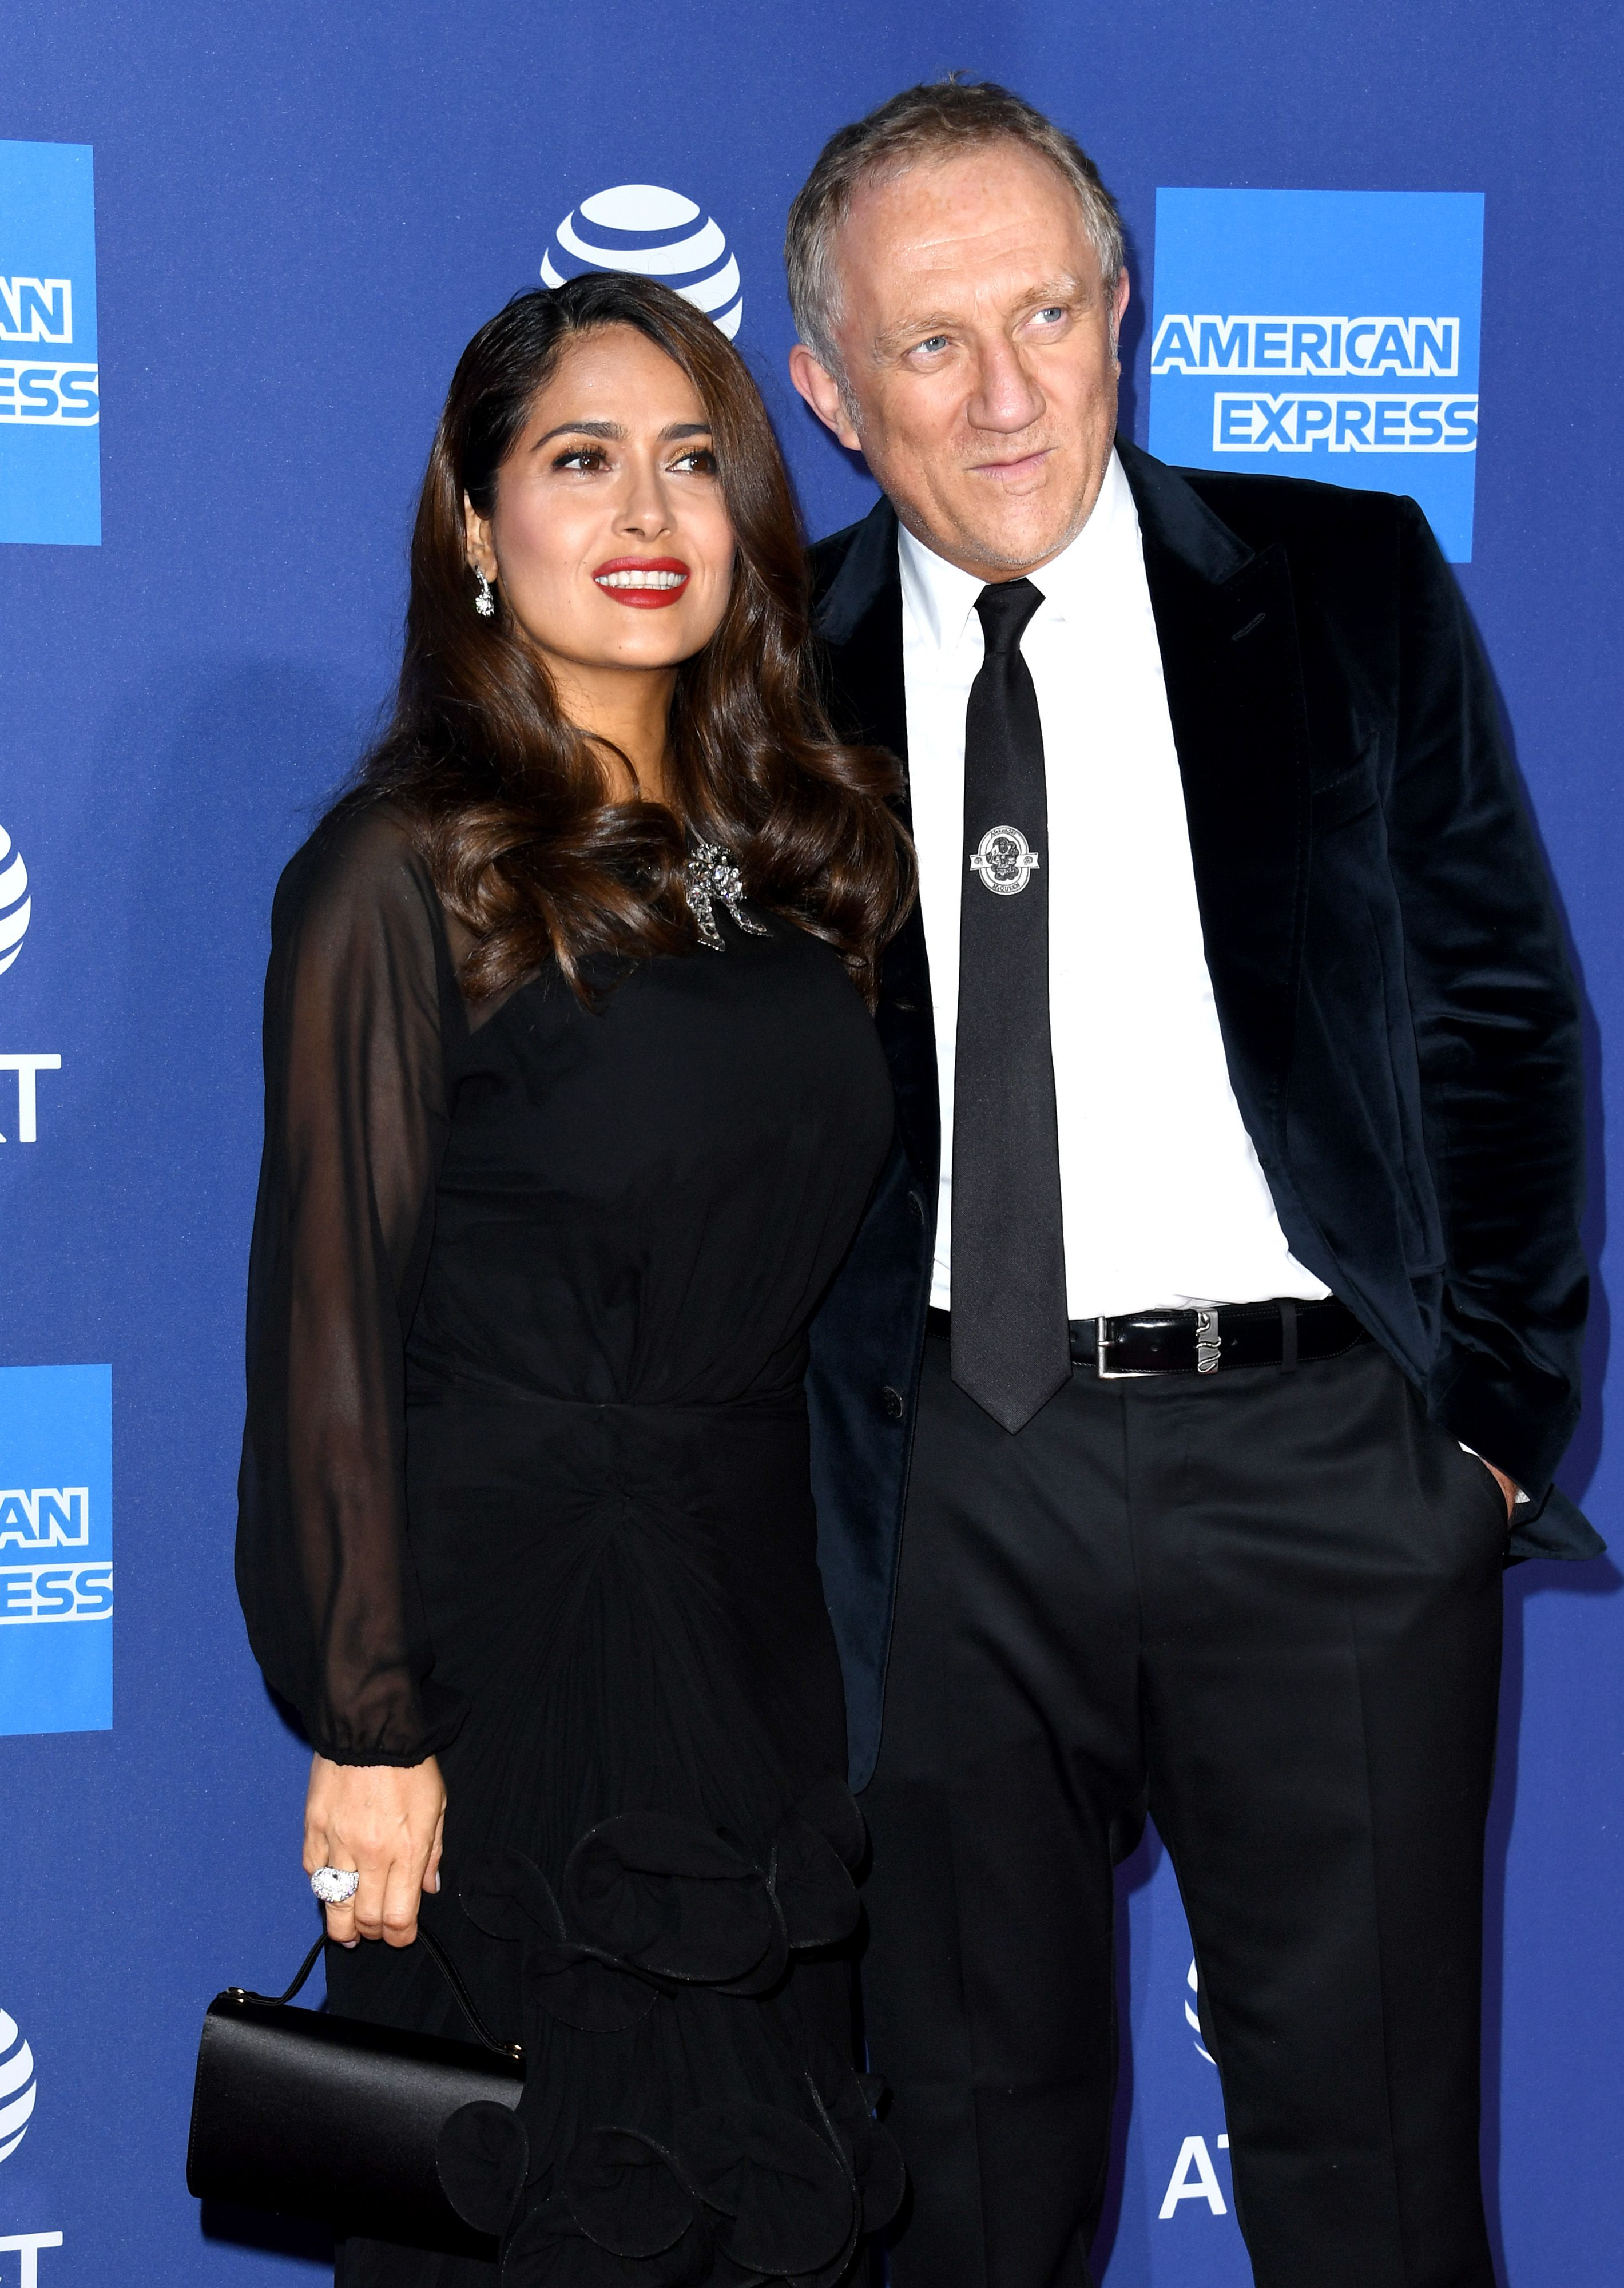 Salma Hayek and François-Henri Pinault during the 31st Annual Palm Springs International Film Festival Film Awards Gala at Palm Springs Convention Center on January 02, 2020 in Palm Springs, California. | Source: Getty Images